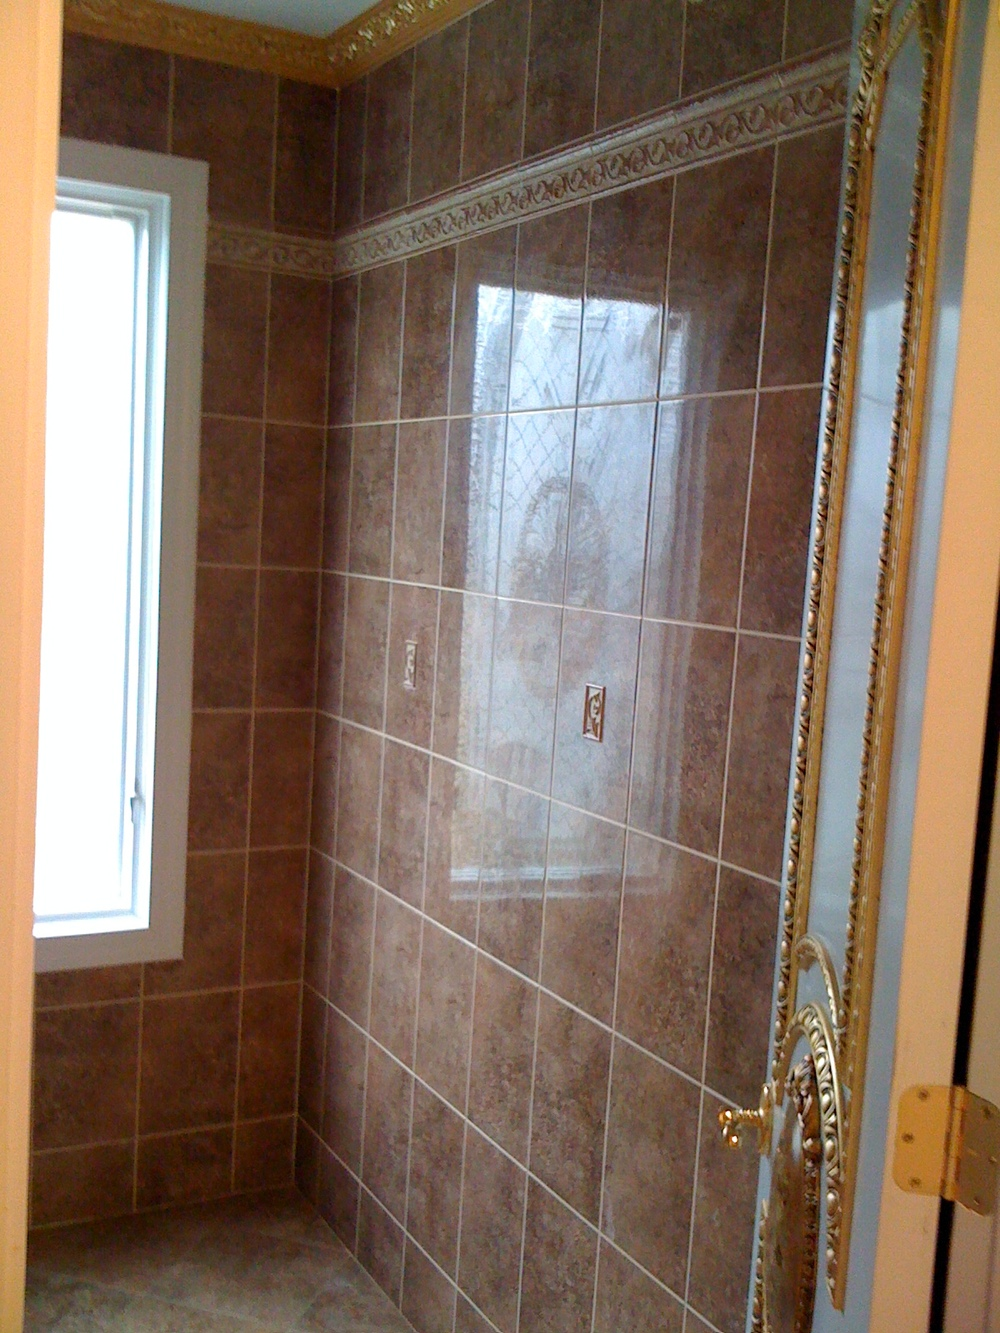 Bathrooms and Tiles — Five Star General Construction